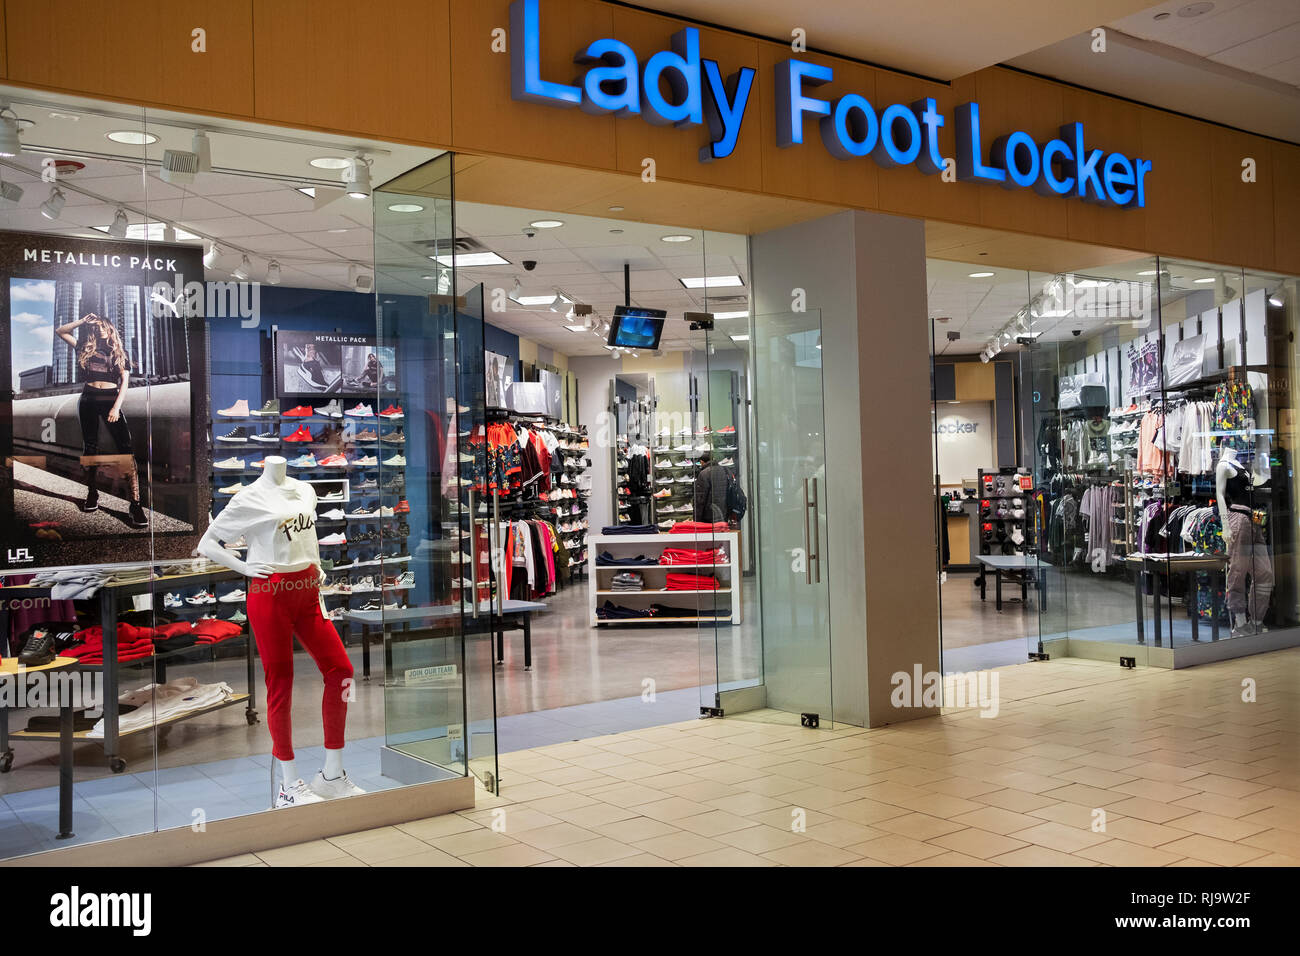 34de9ede31 The exterior of the Lady Foot Locker store at the Queens Center Mall in  Elmhurst